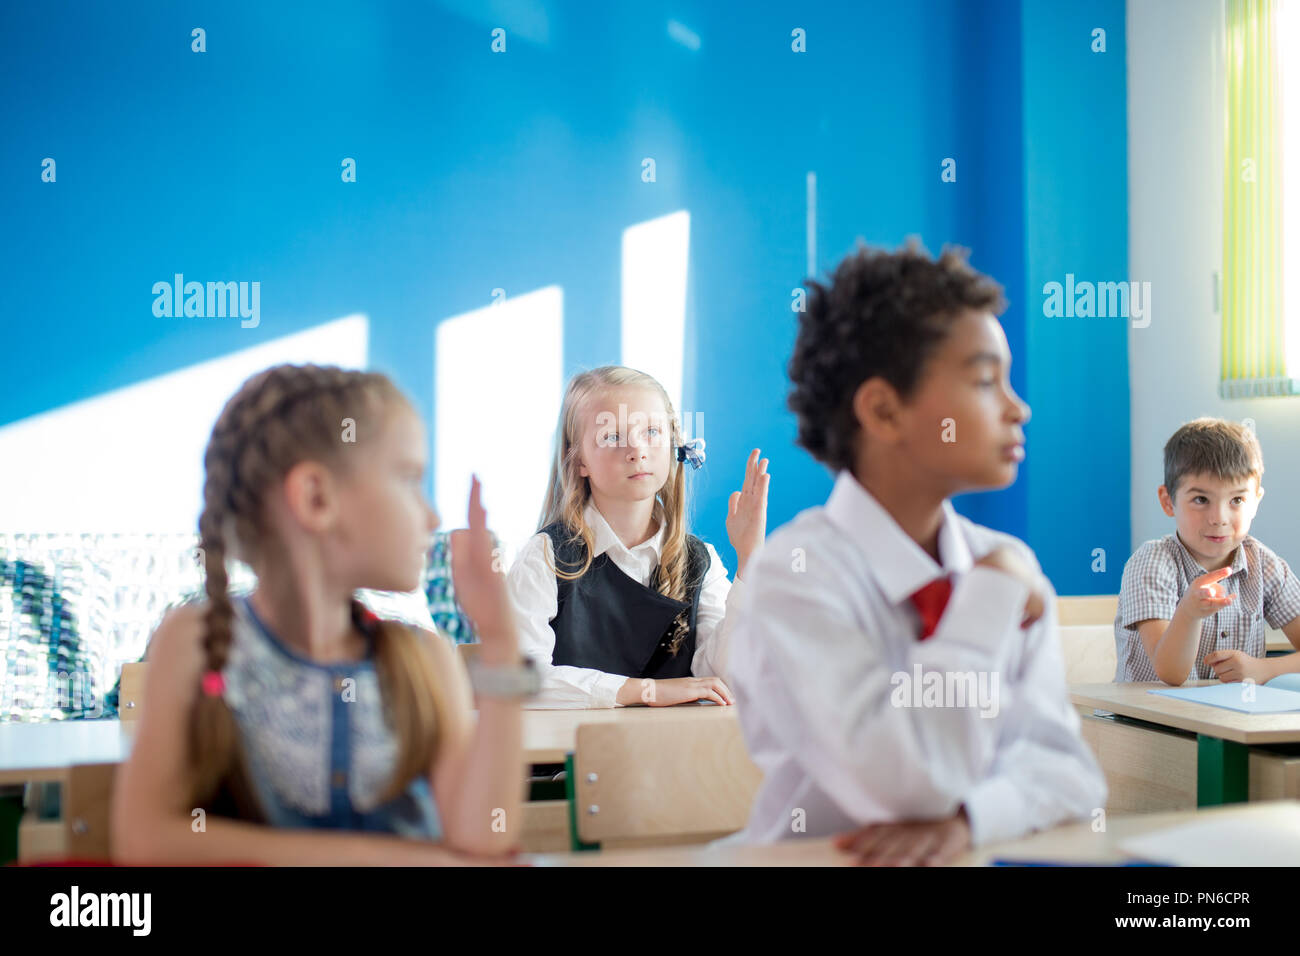 group of school children all raising their hands in the air to answer Stock Photo